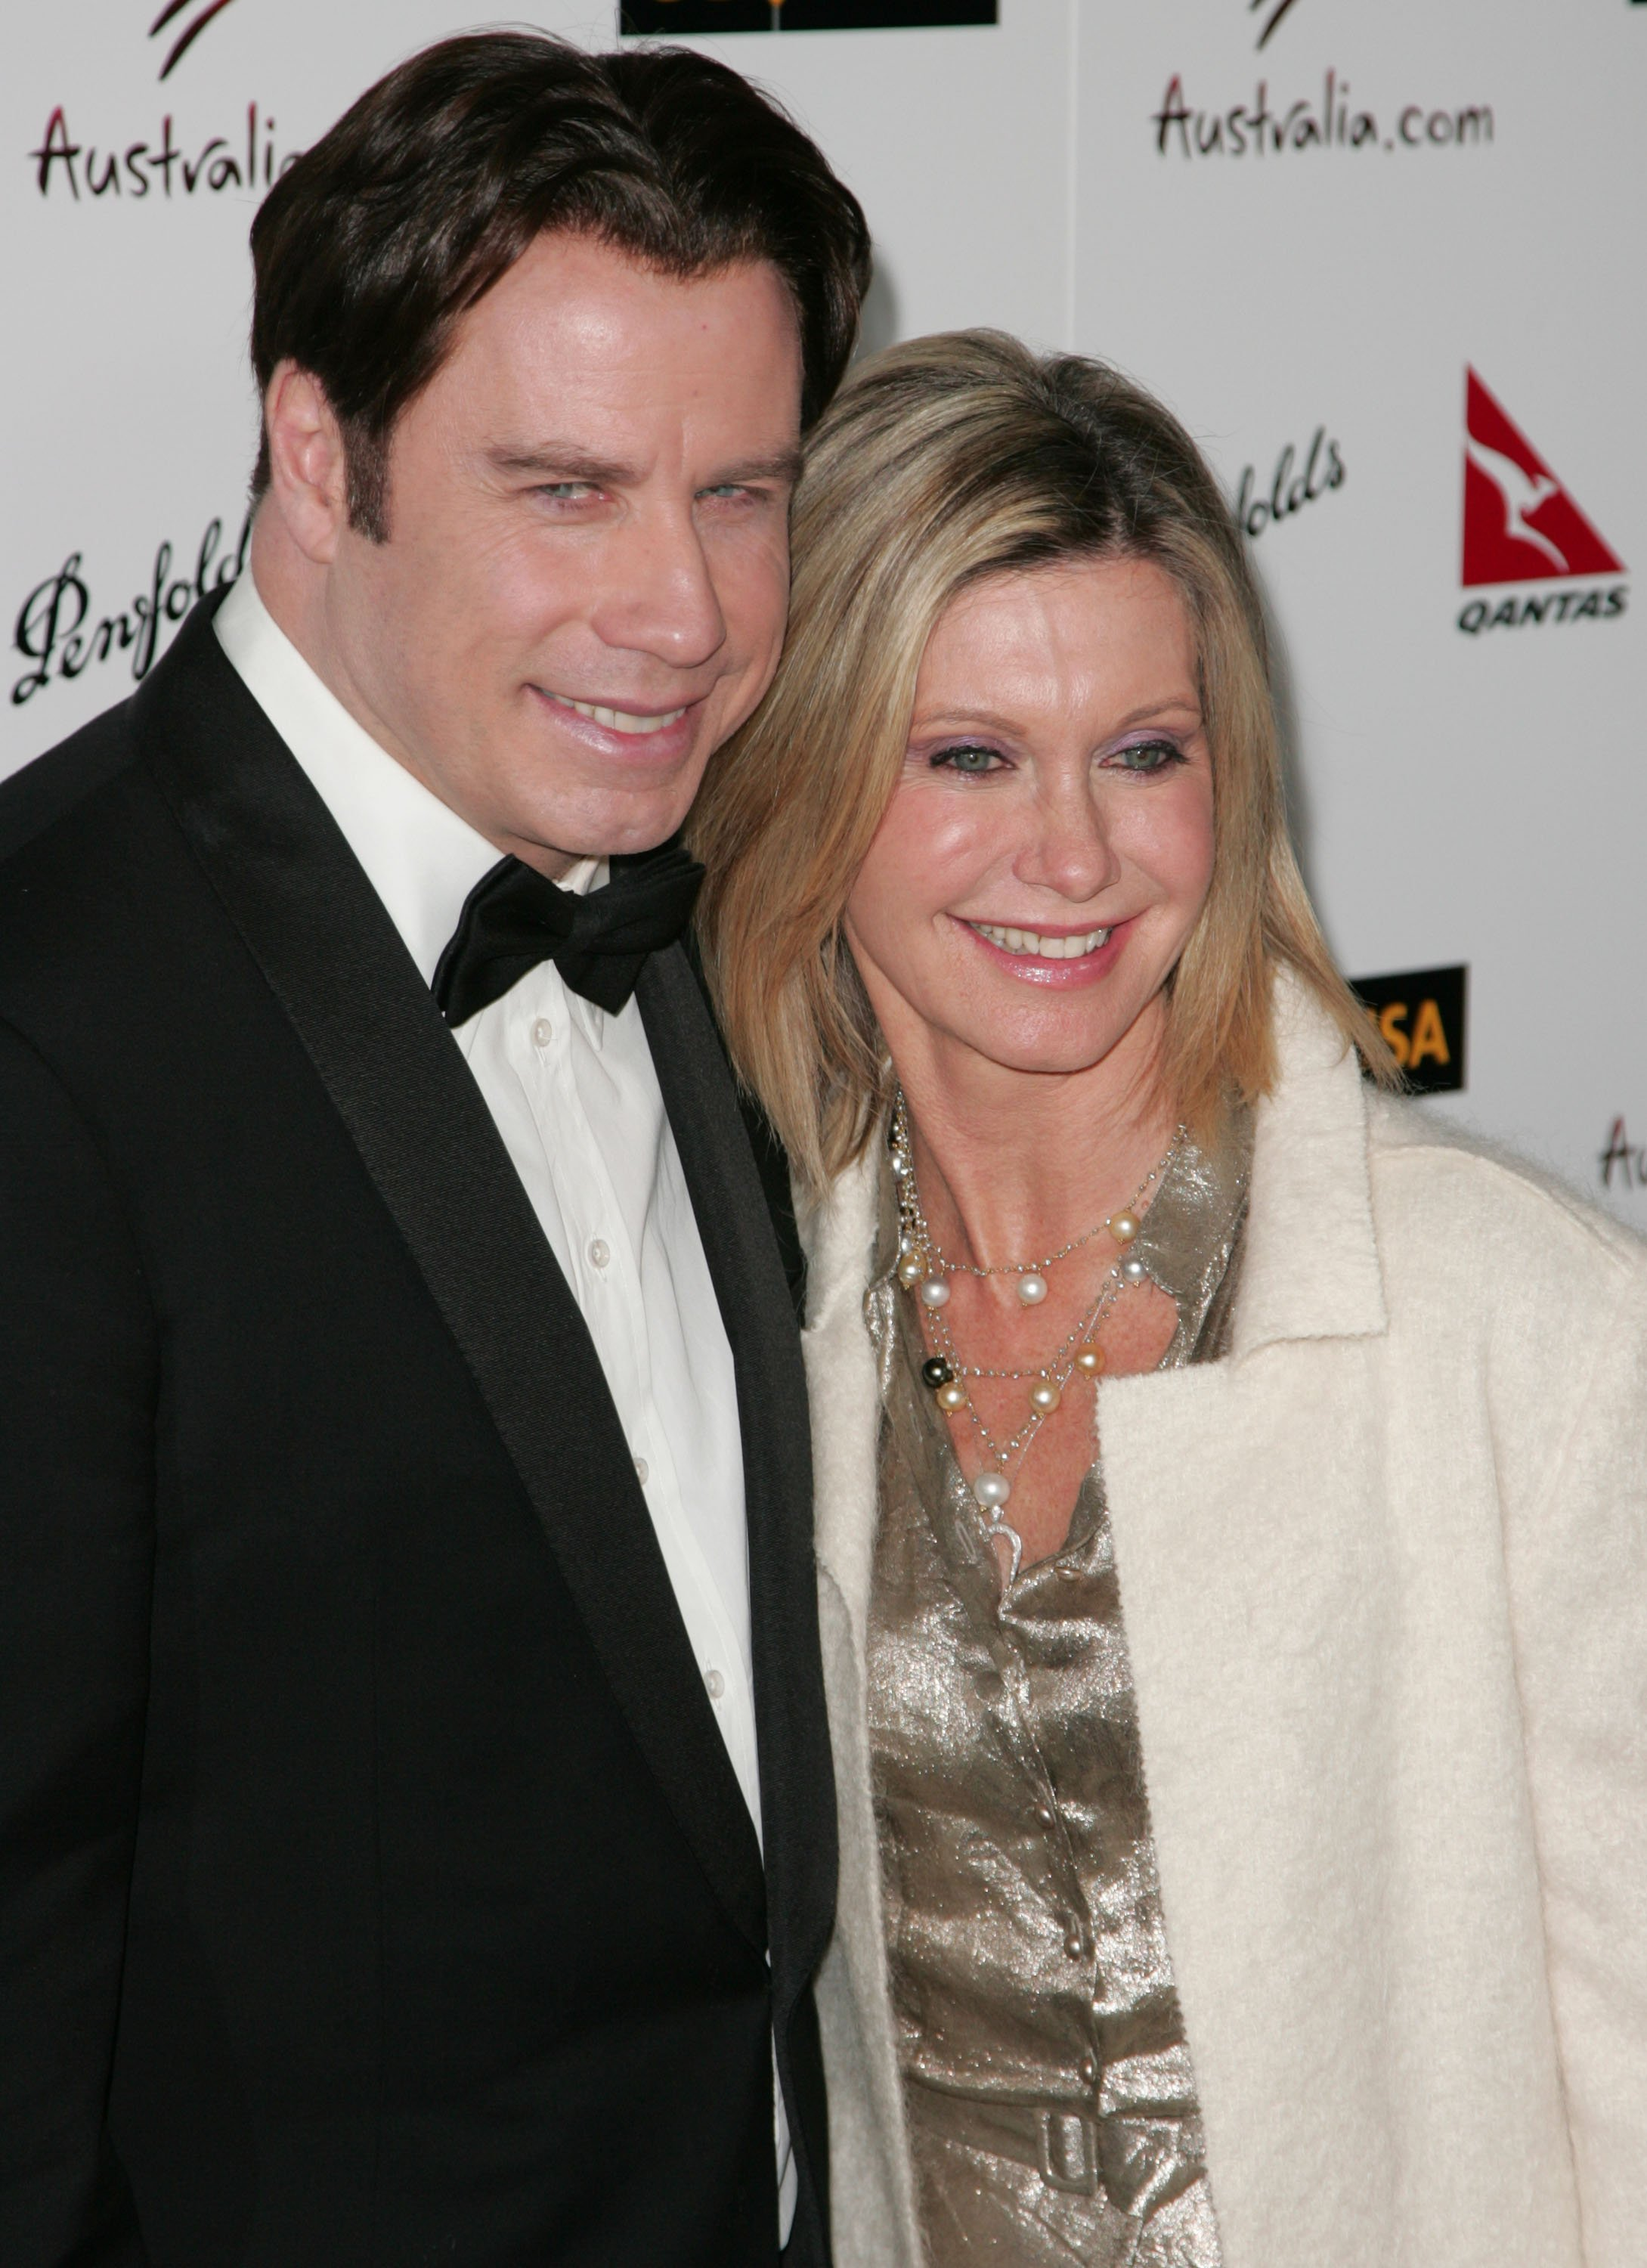 John Travolta and singer Olivia Newton-John arrive at the G'DAY USA Australia.com Black Tie Gala held at the Hollywood and Highland Grand Ballroom on January 19, 2008, in Hollywood, California. | Source: Getty Images.